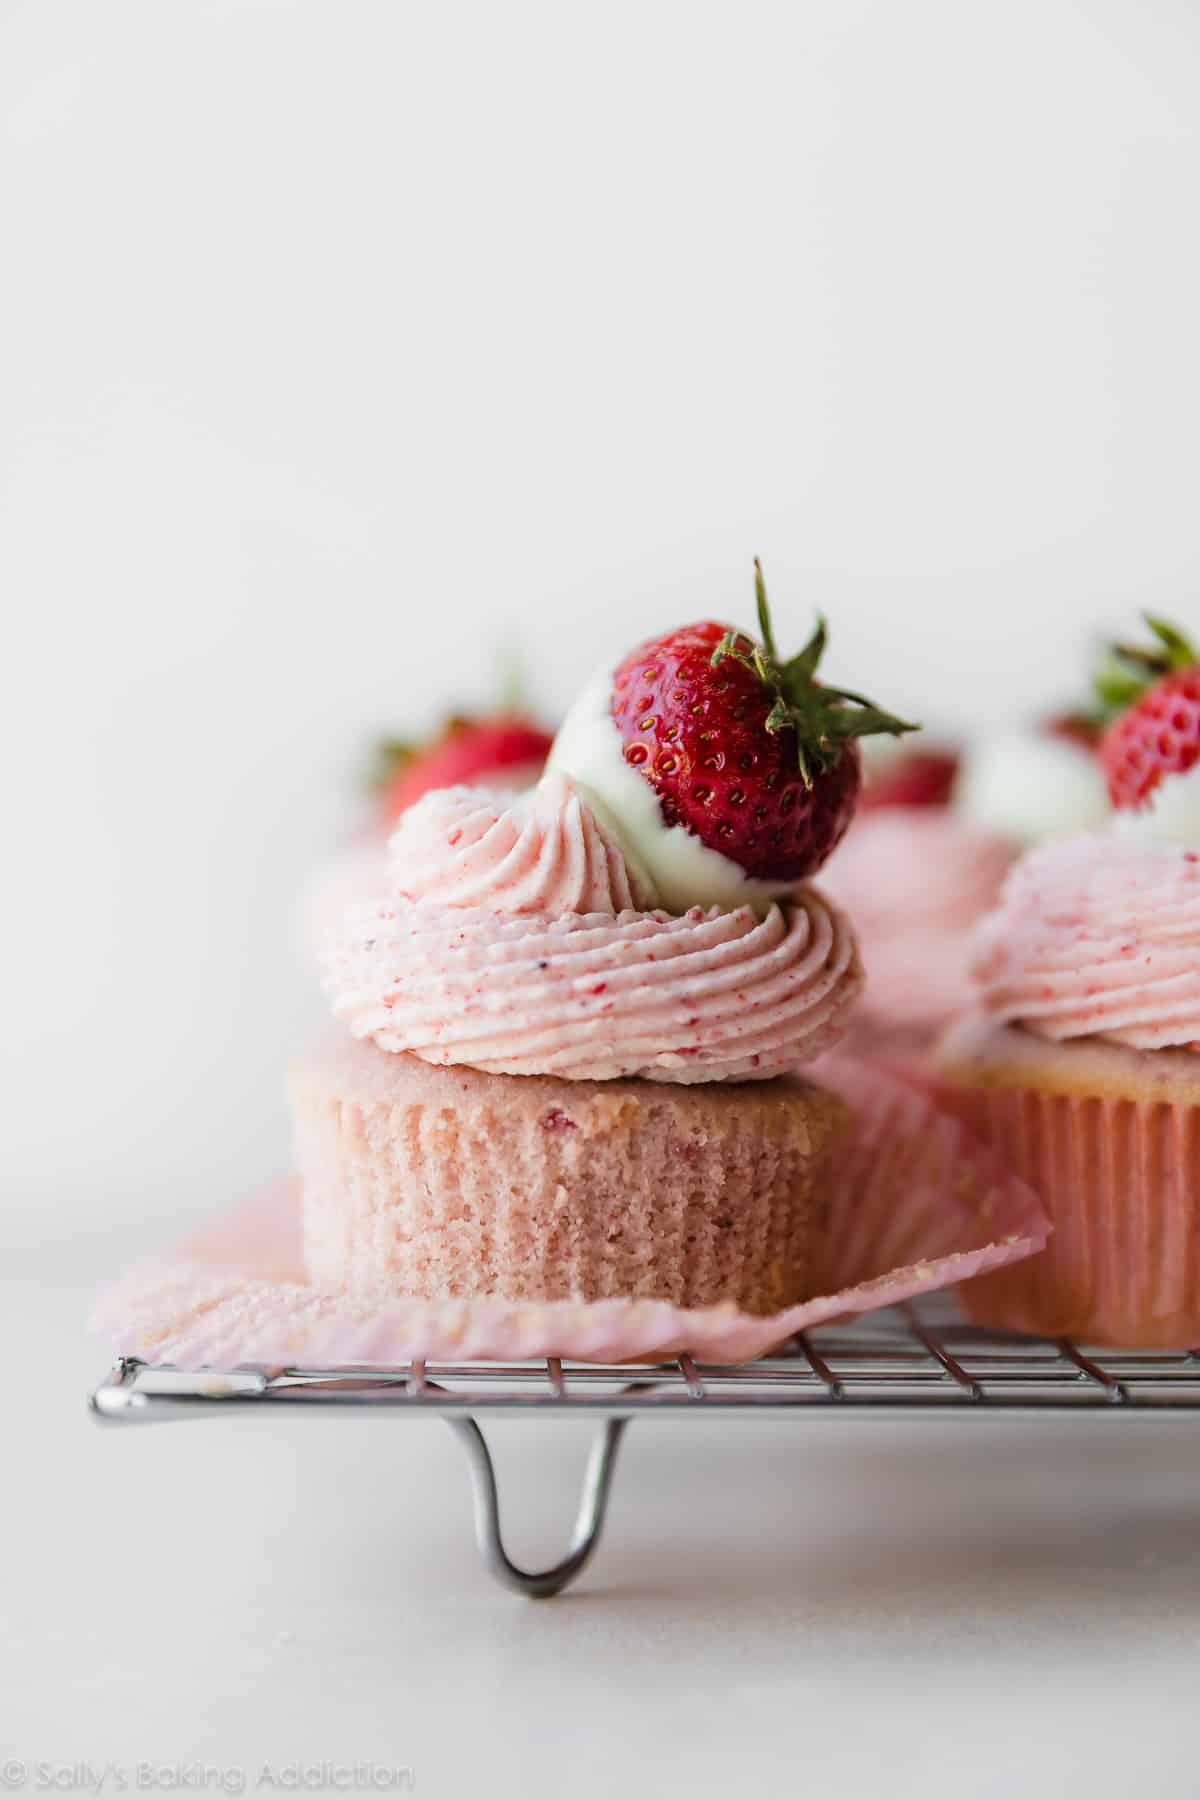 White Chocolate Strawberry Cupcakes | Sally's Baking Addiction